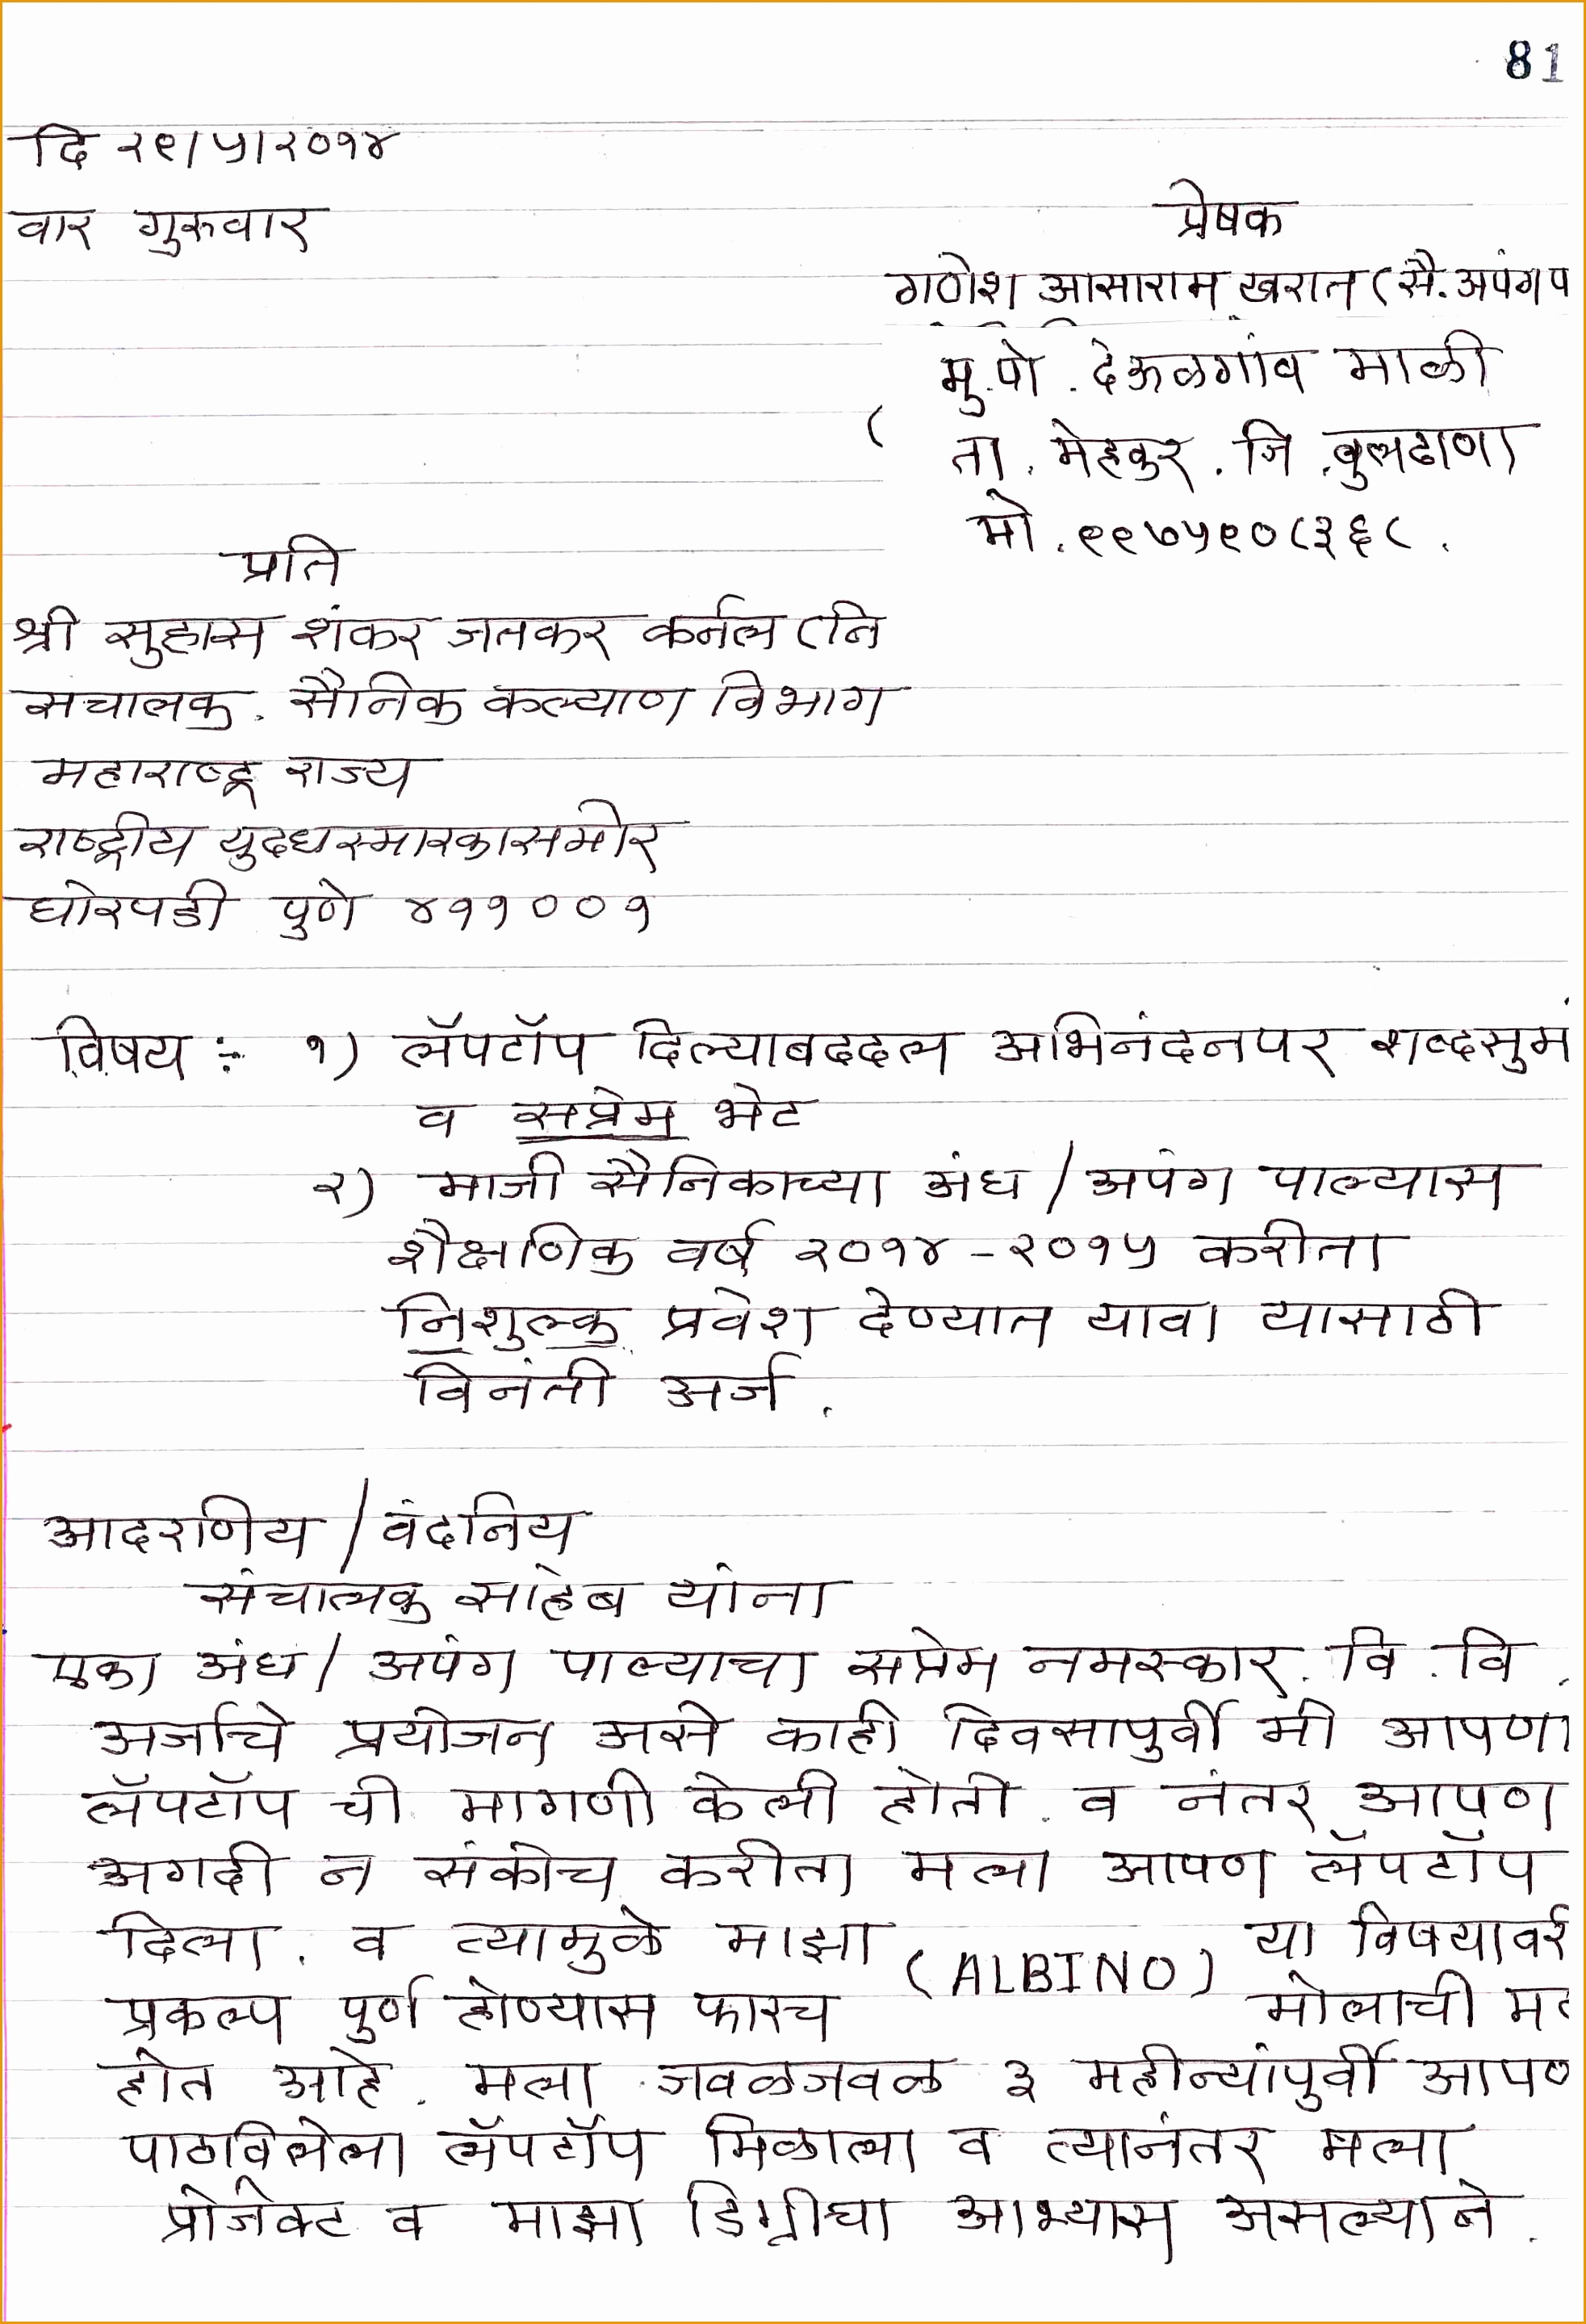 sample of plaint letter to police station in marathi28791965